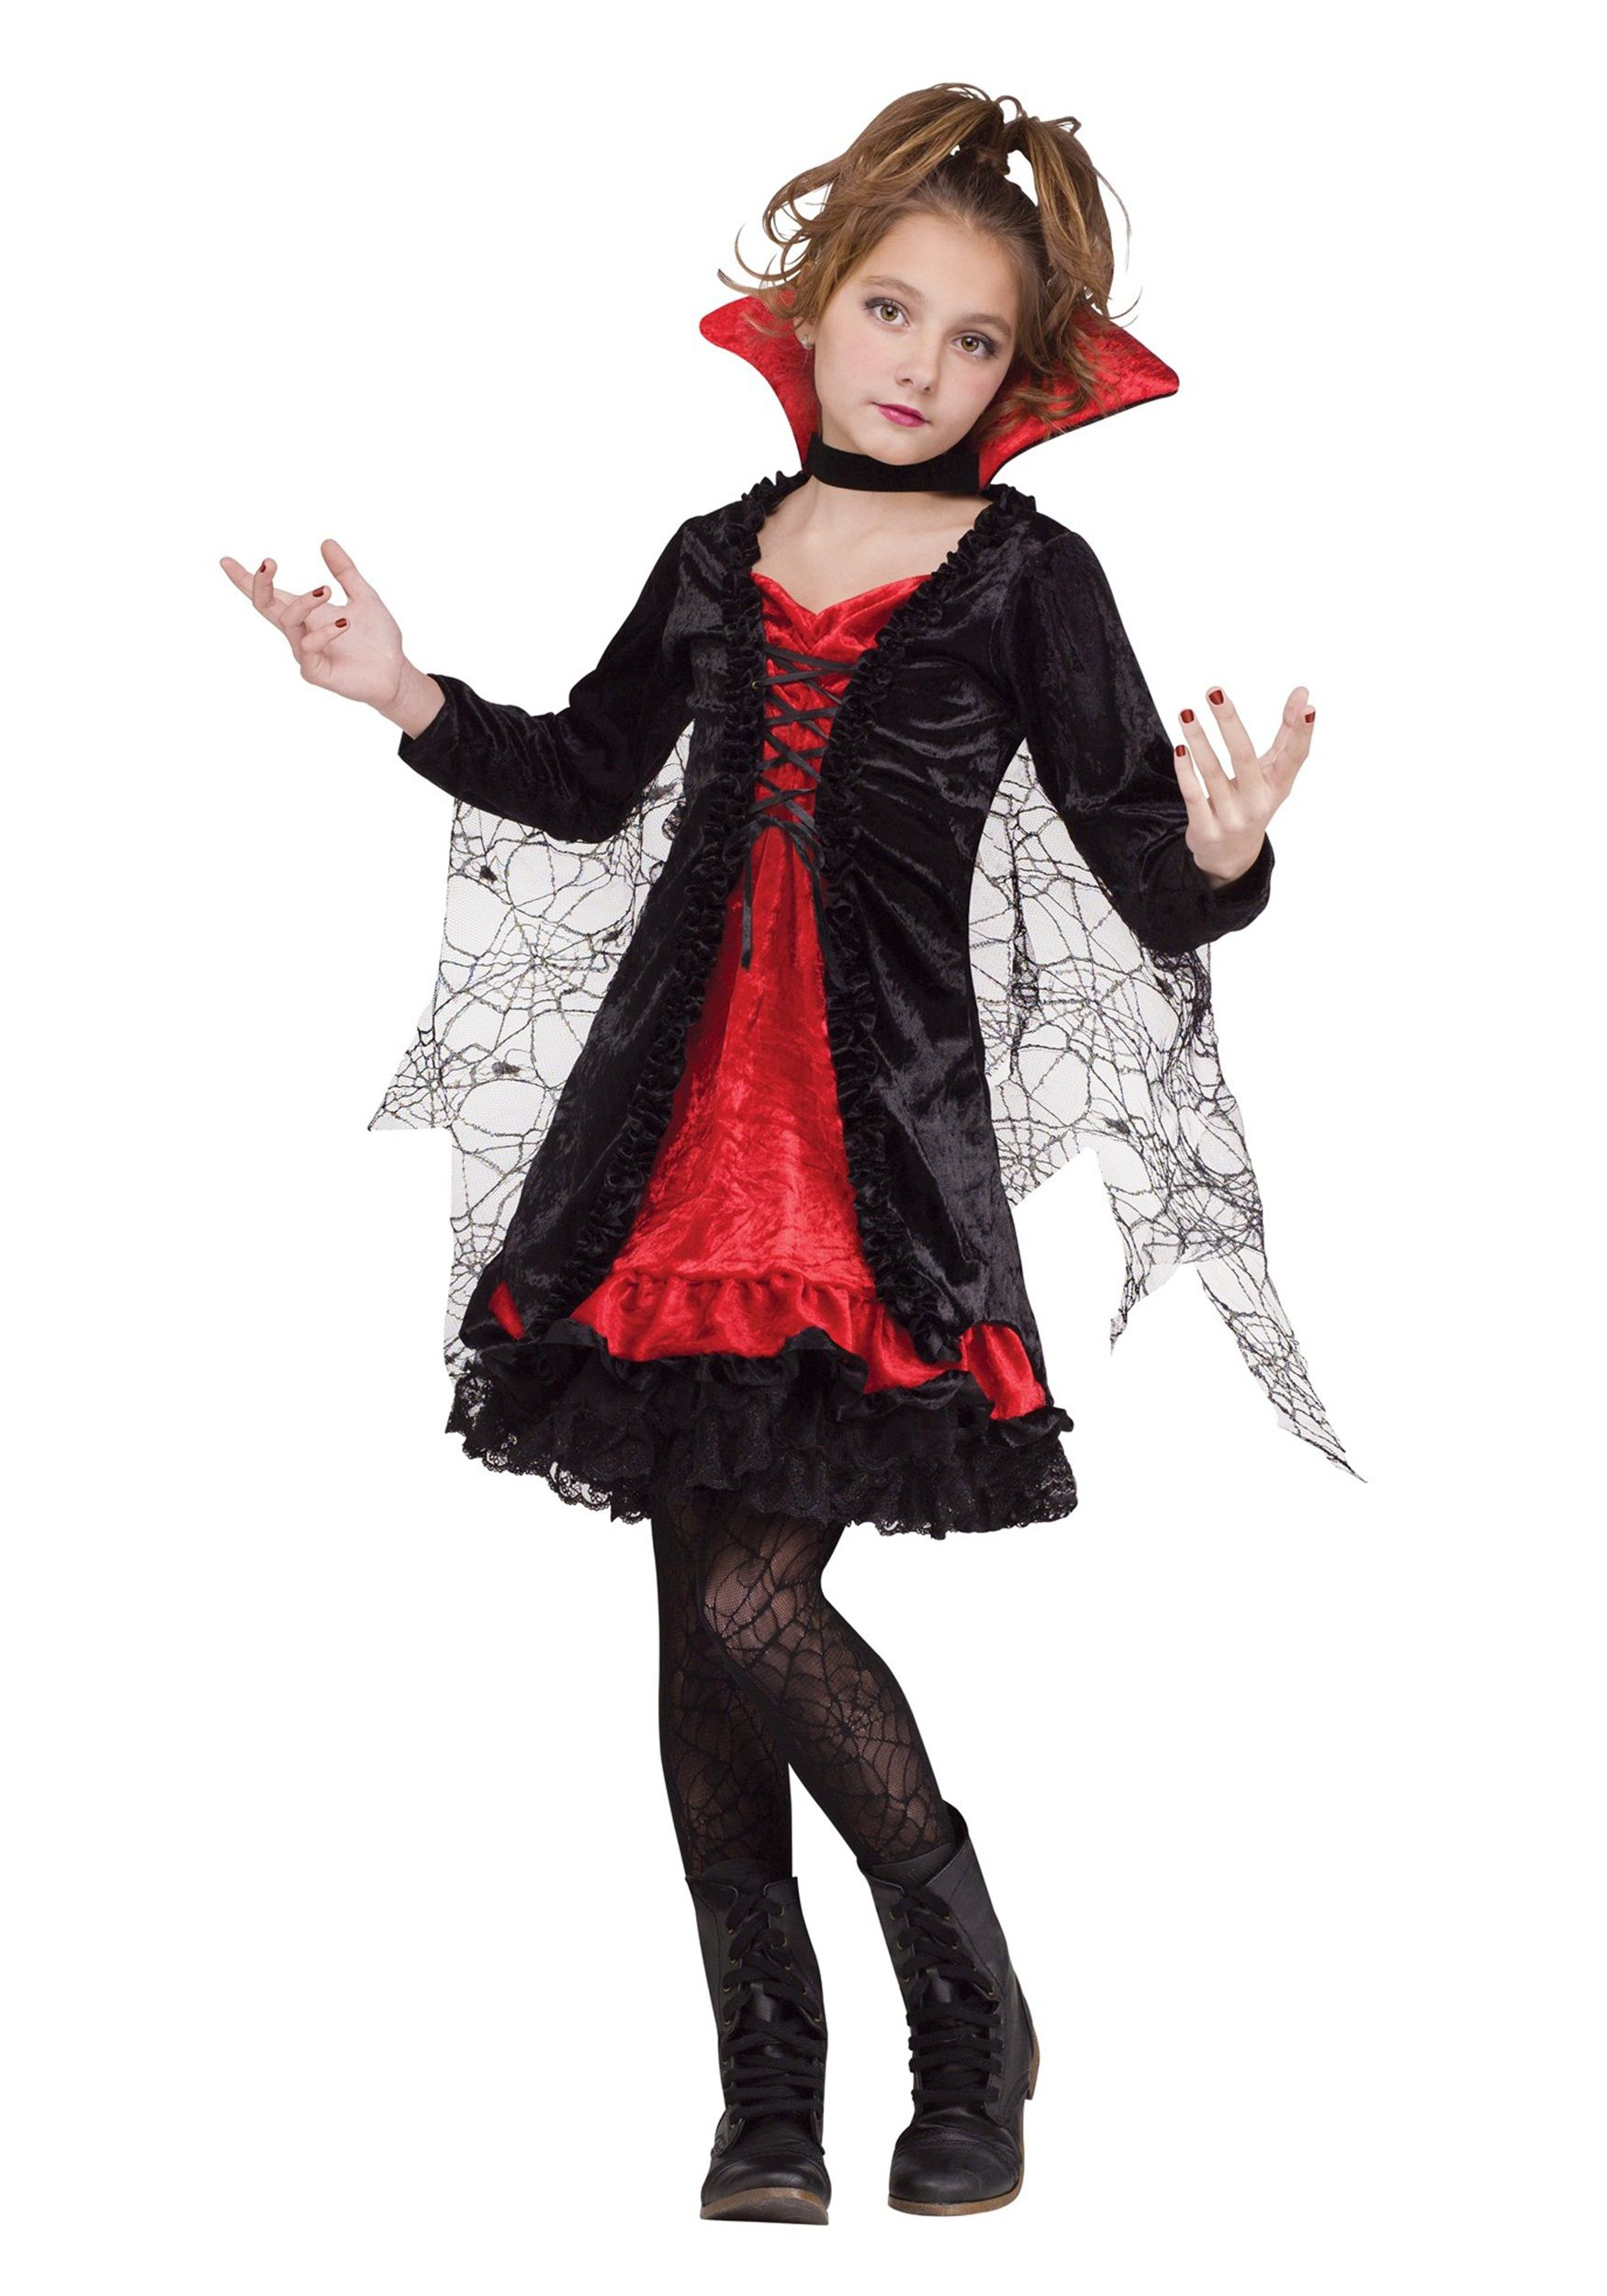 DELUXE VAMPIRESS FANCY DRESS COSTUME GIRLS CHILD/'S HALLOWEEN VAMPIRE